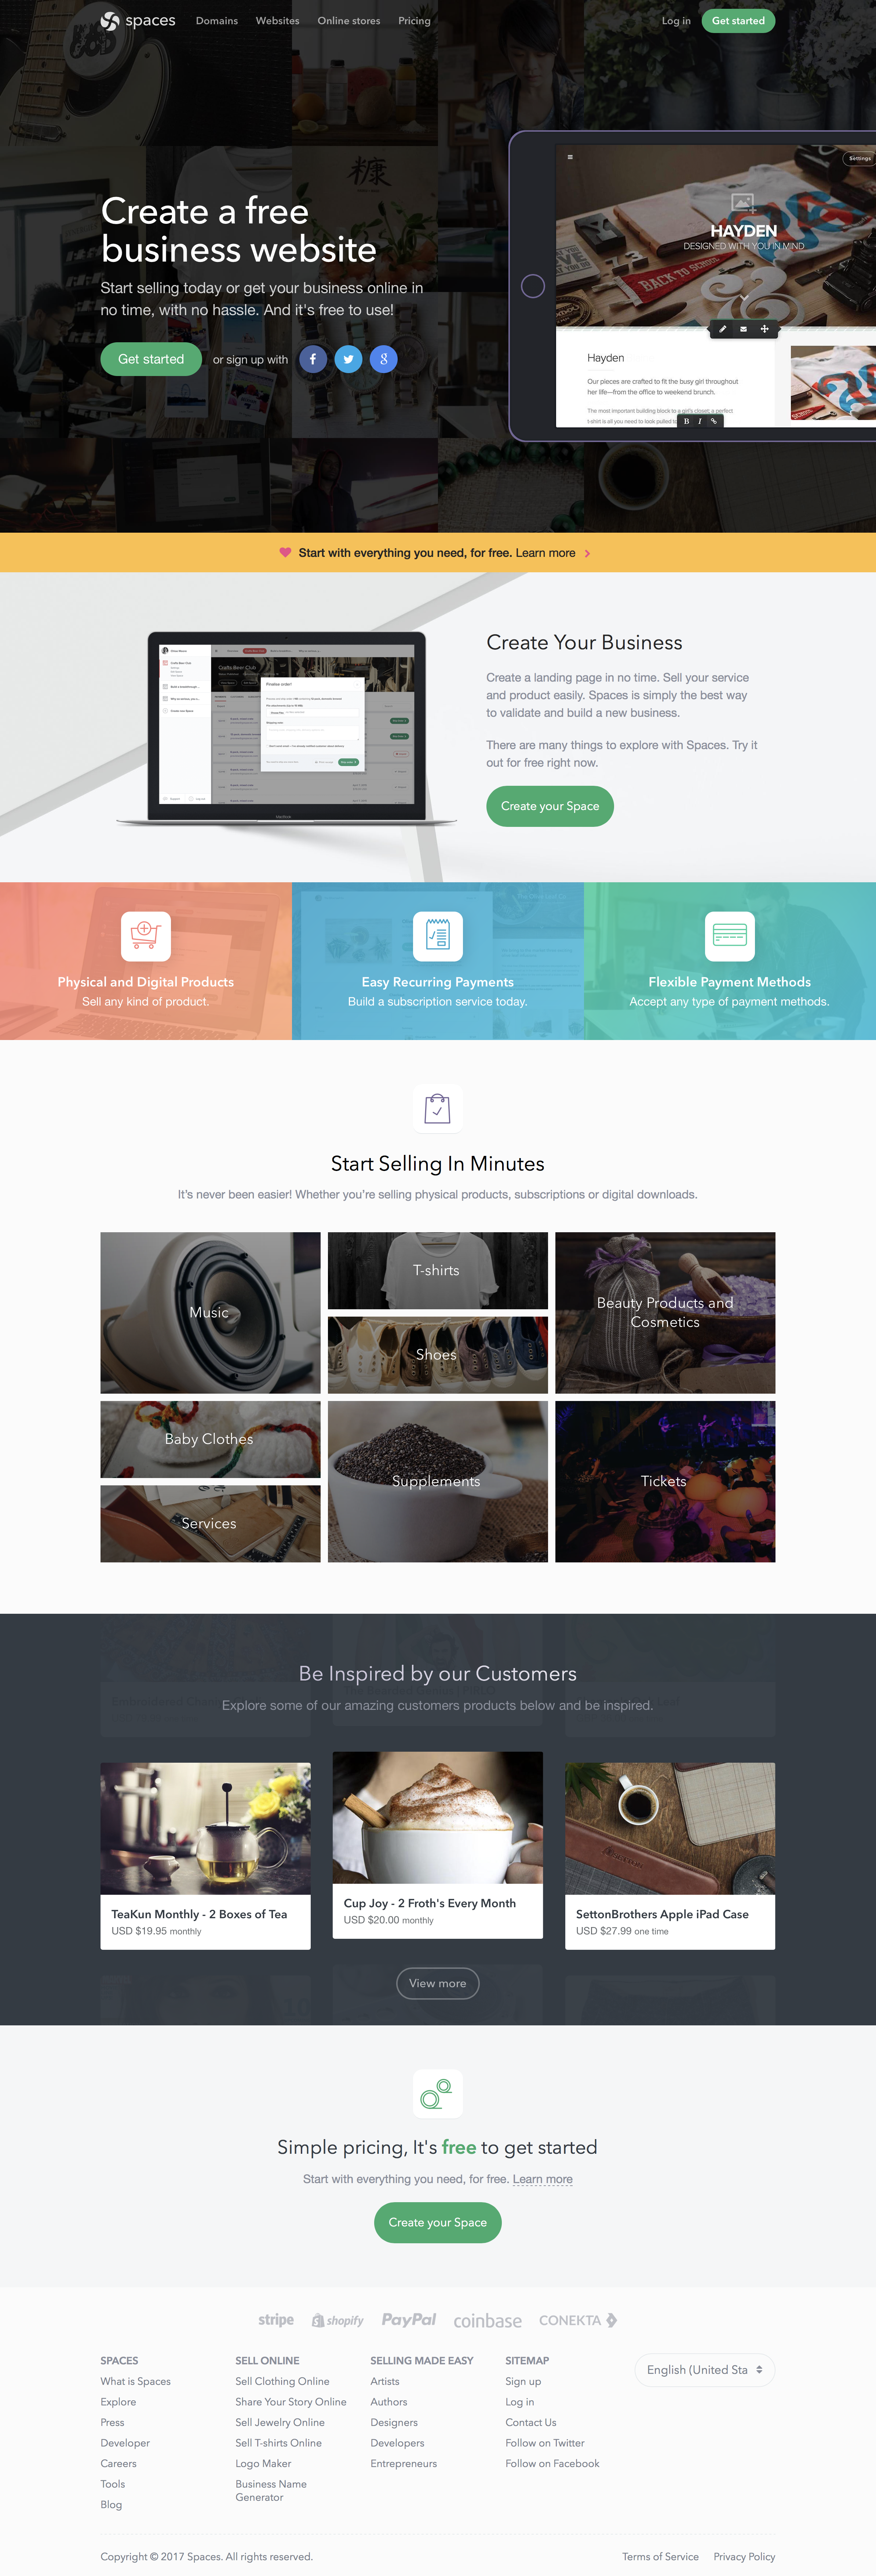 Spaces frontpage full